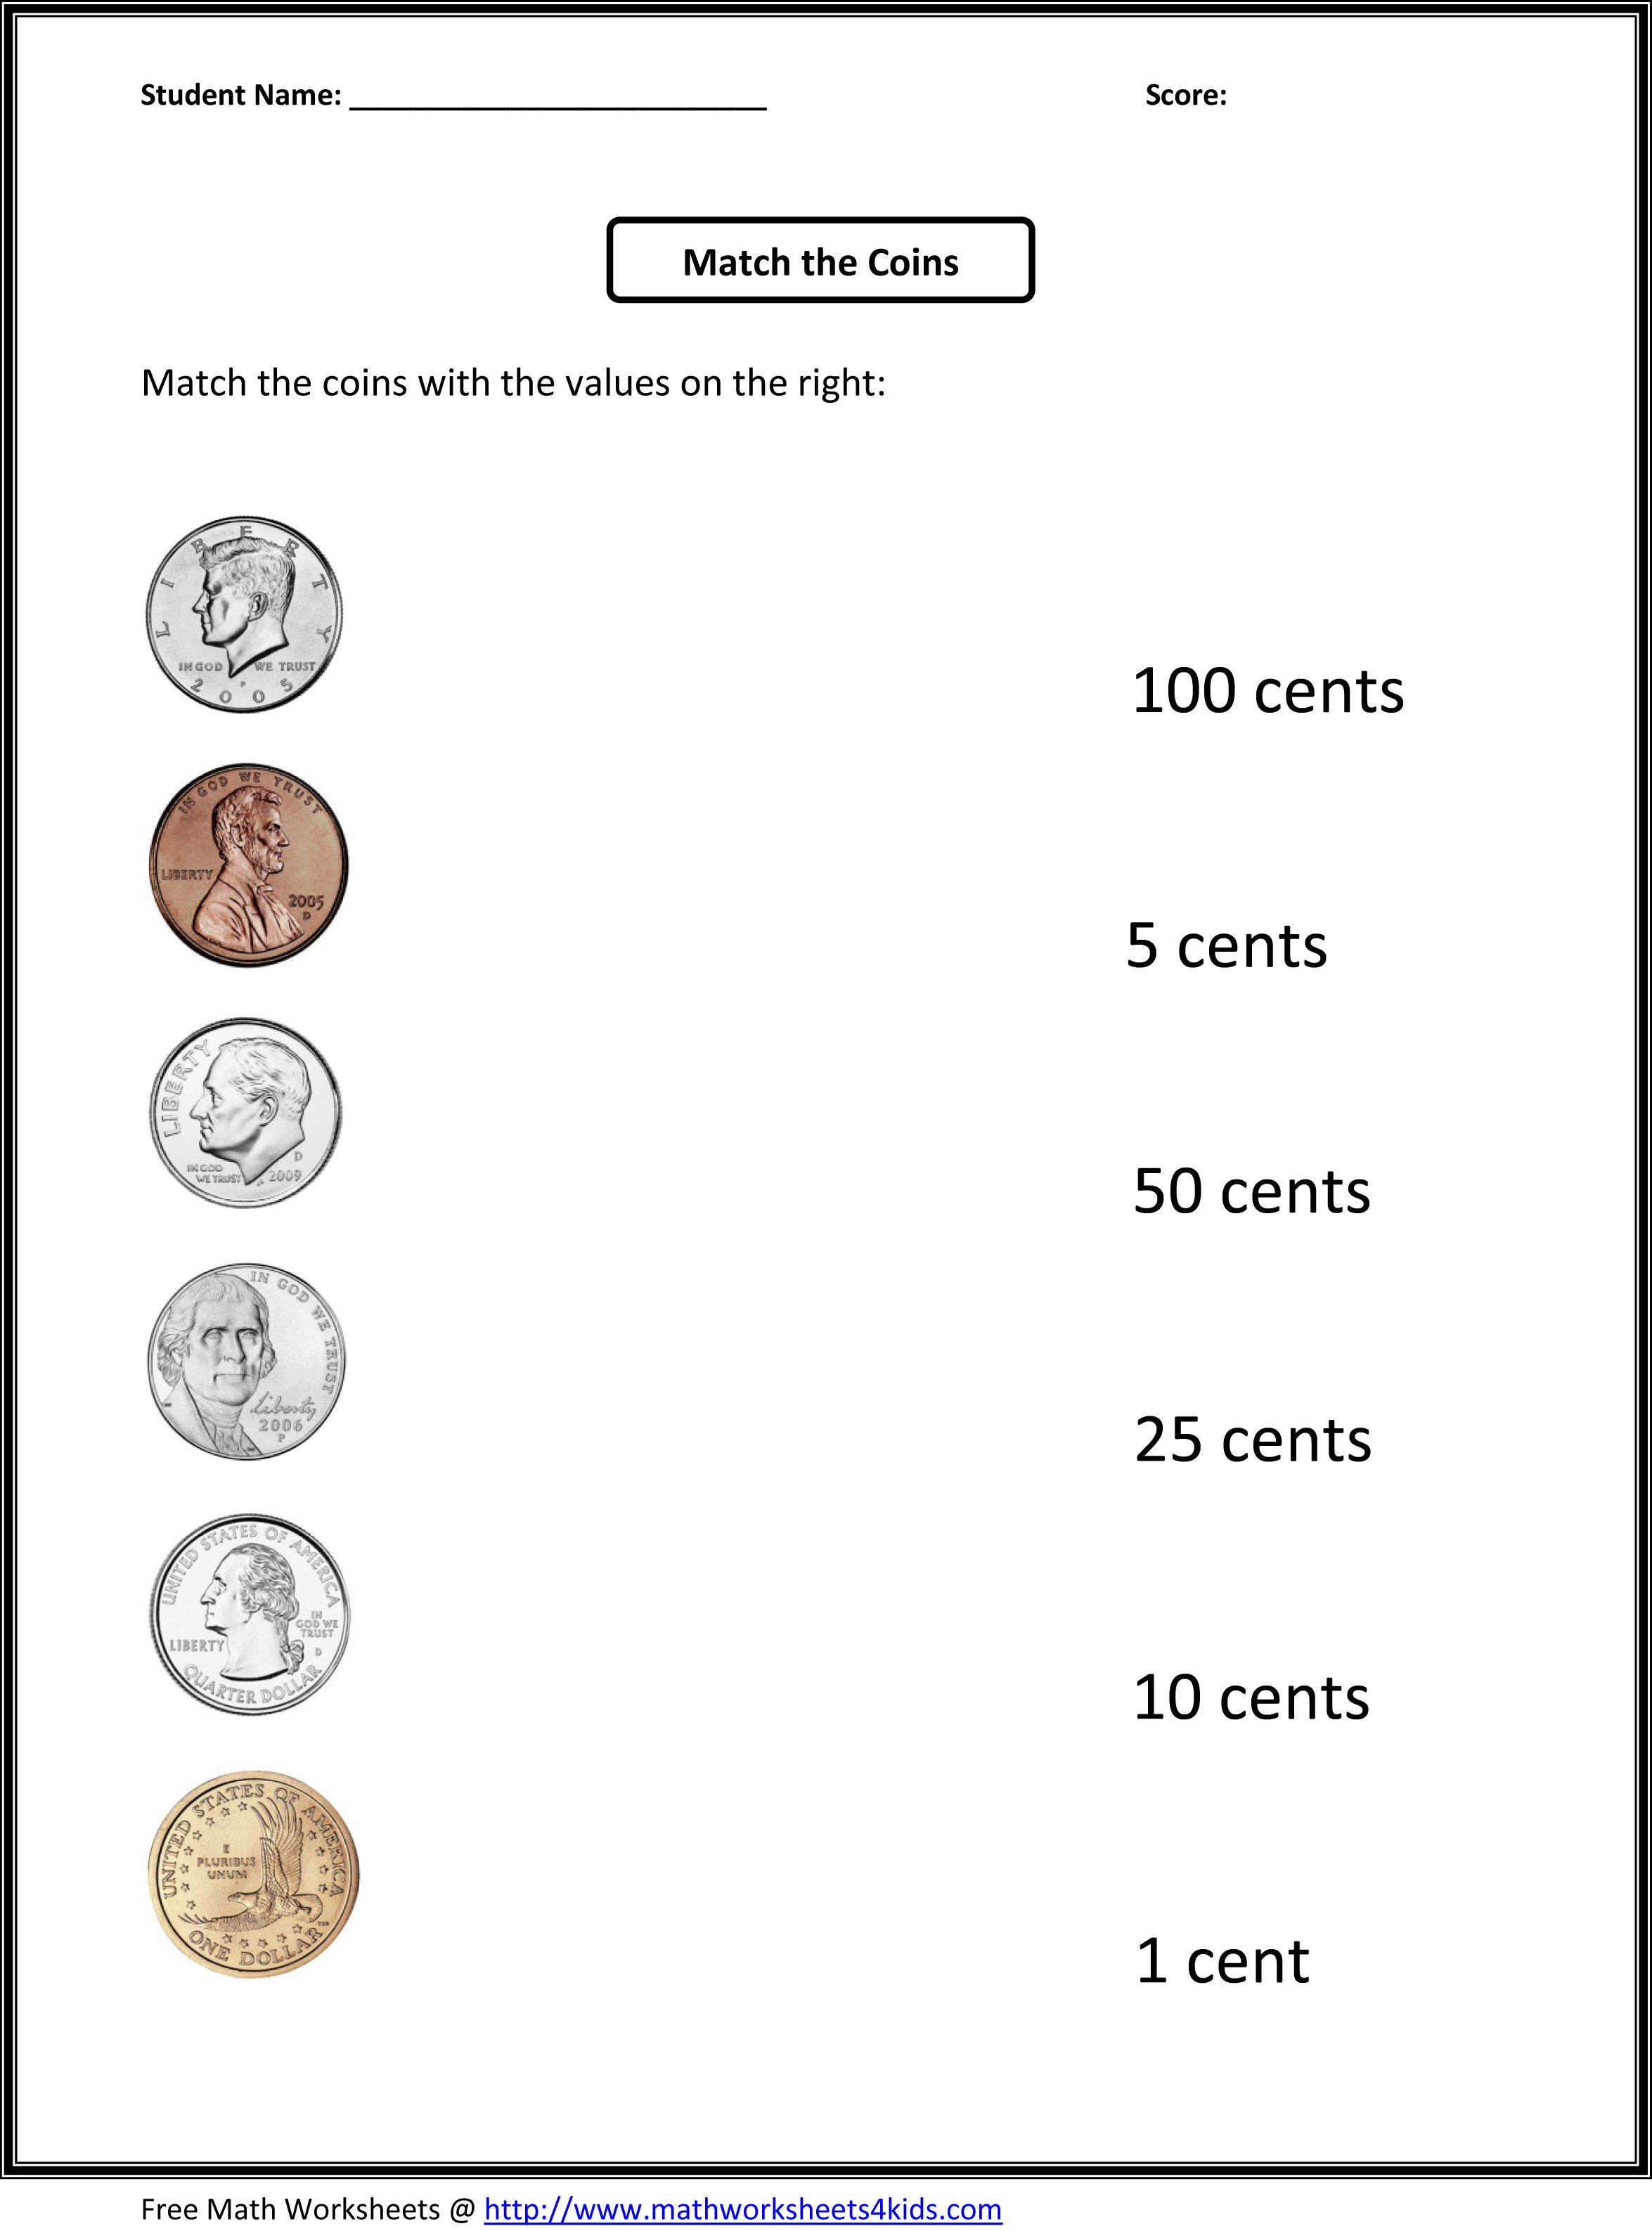 Free 1St Grade Worksheets | Match The Coins And Its Values | Printable Worksheets For 1St Grade